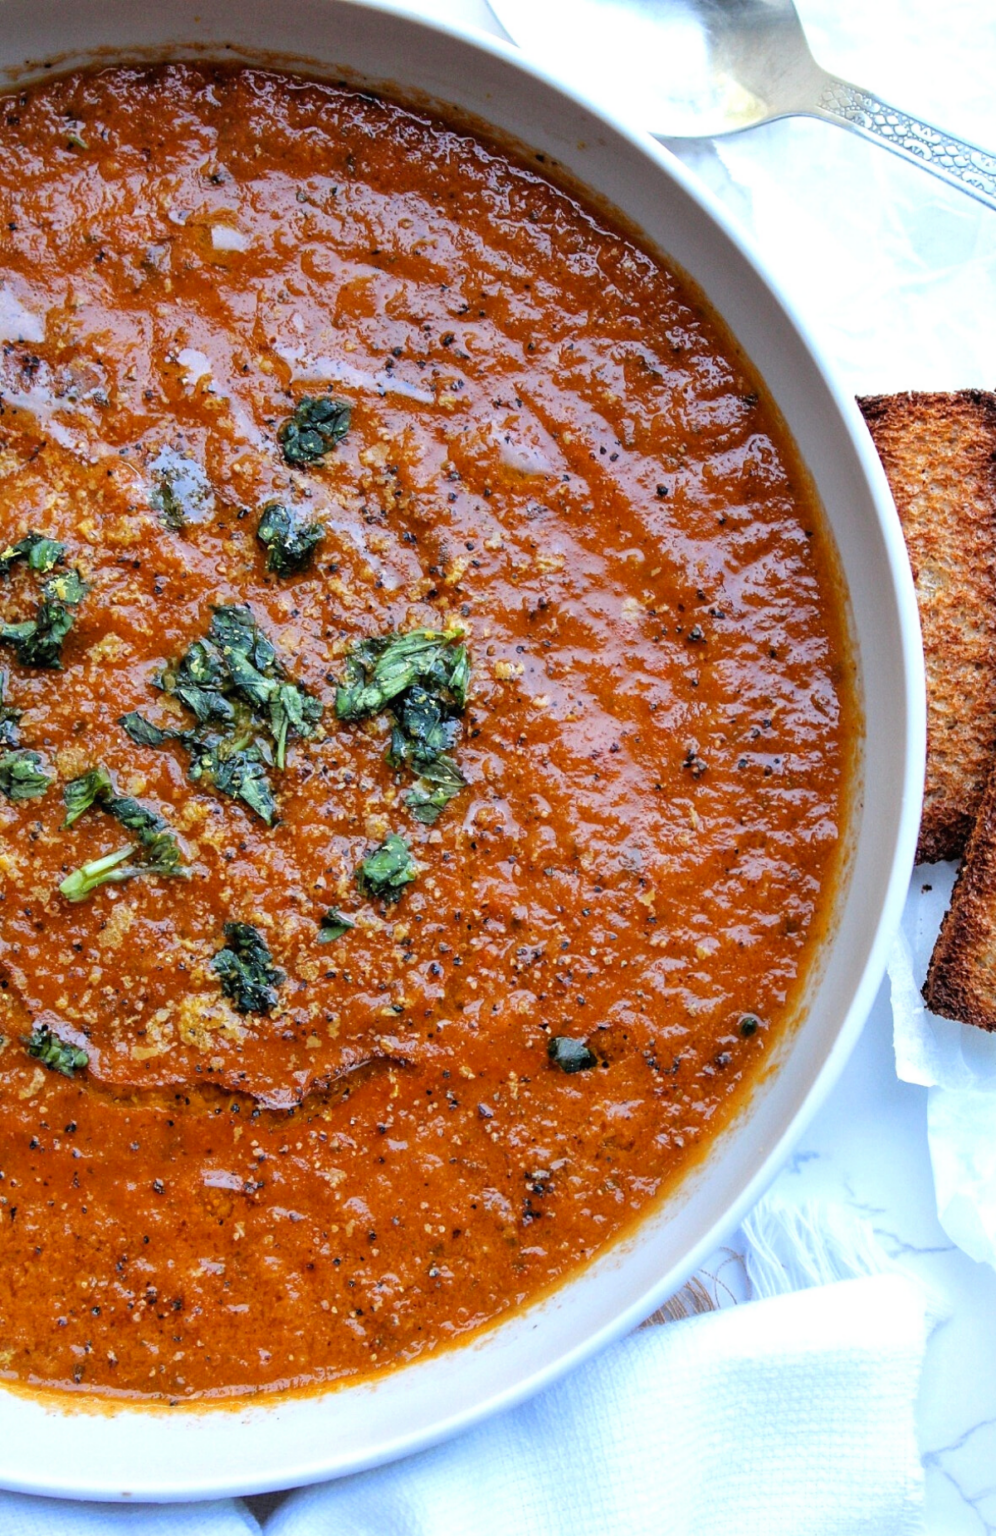 Homemade roasted tomato soup served with choppedbasil and toasted bread.